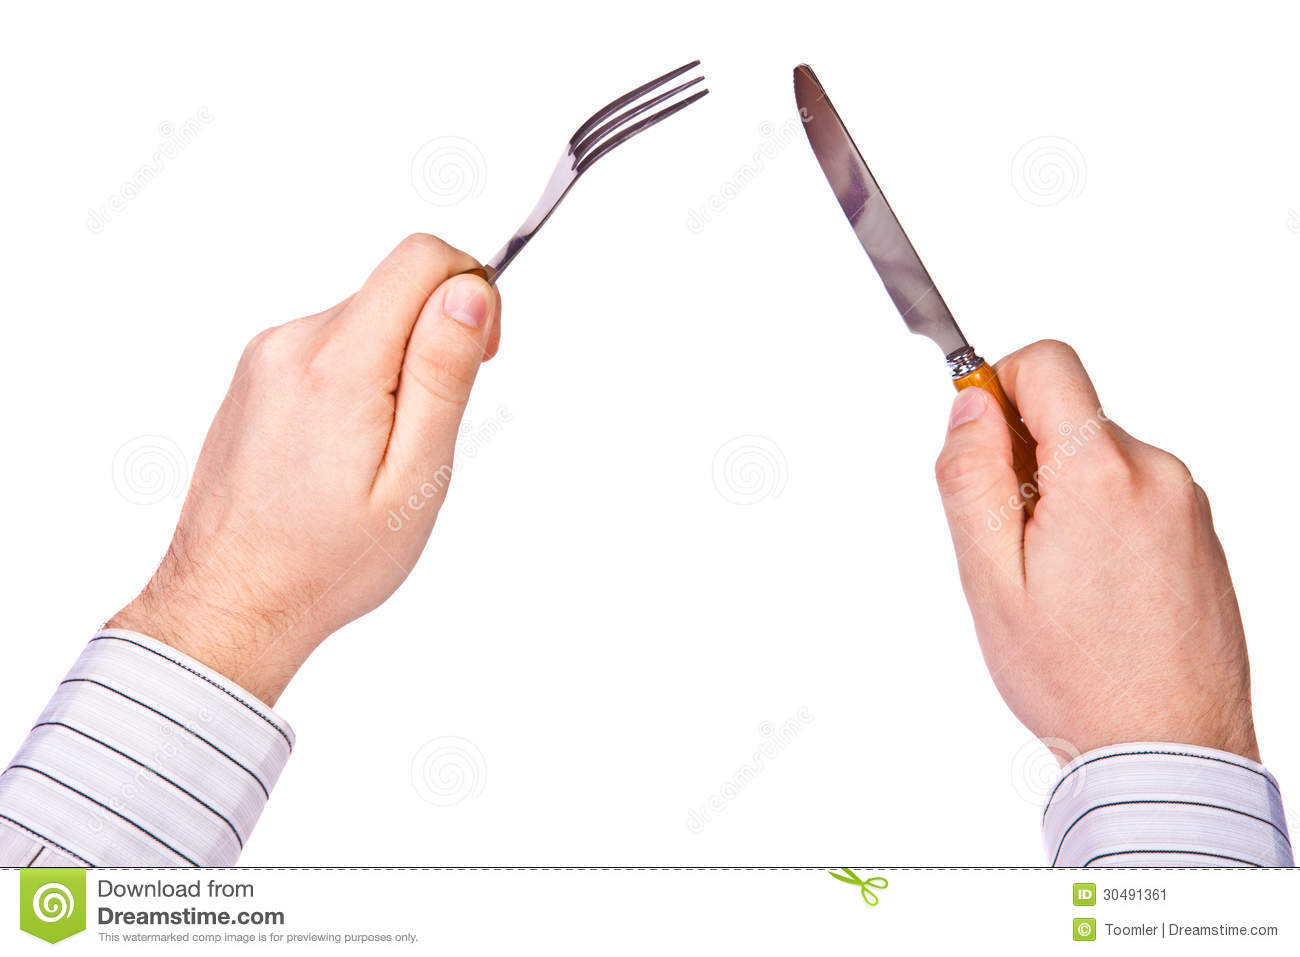 Fork And Knife In Hand Stock Image Image 30491361 : fork knife hand men s hands hold 30491361 from www.dreamstime.com size 1300 x 957 jpeg 80kB